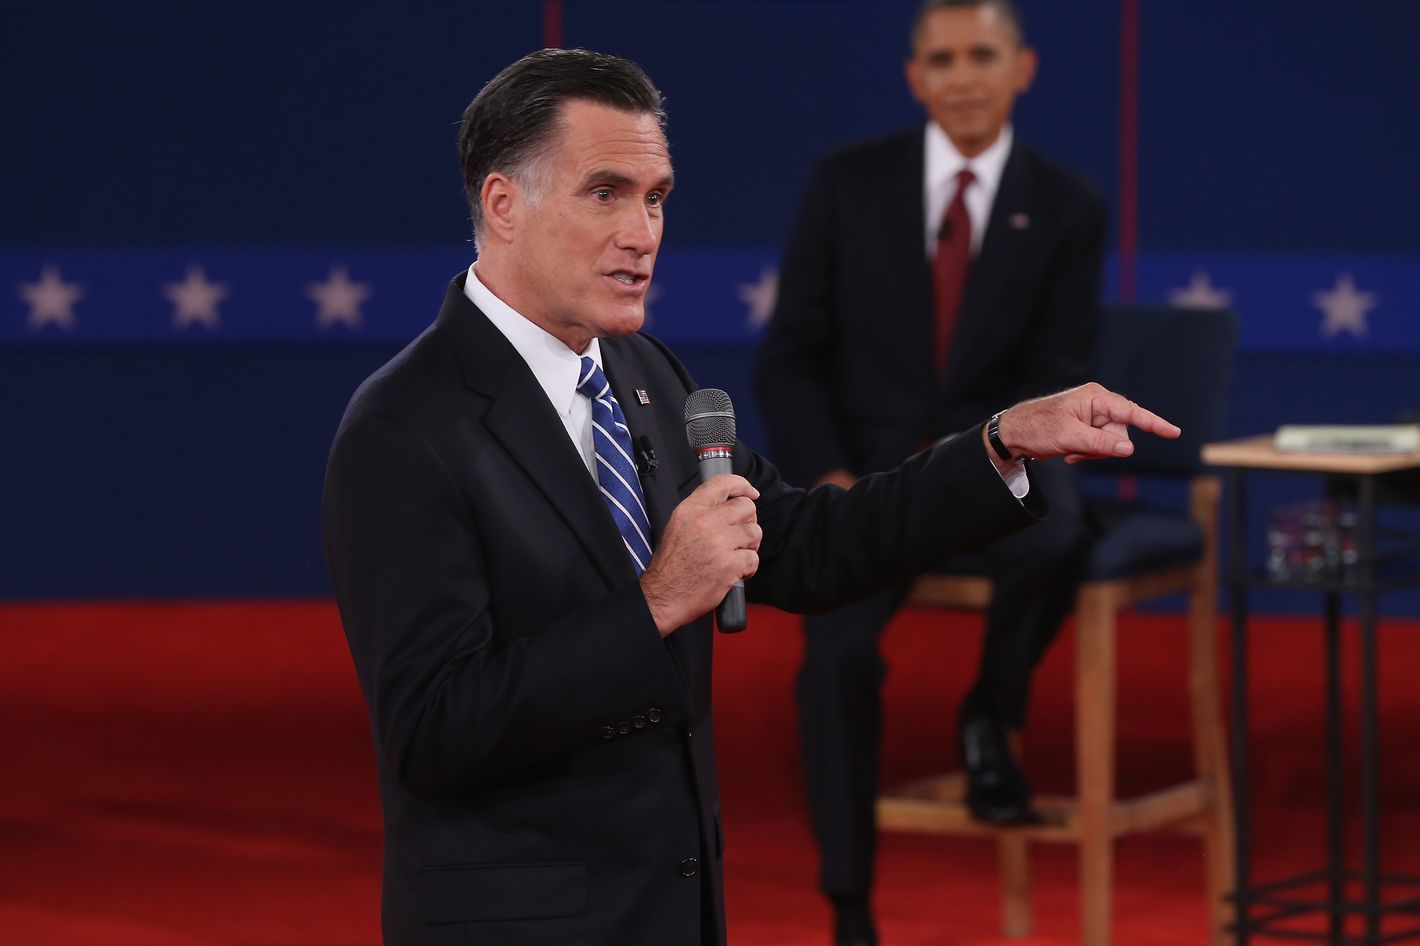 HEMPSTEAD, NY - OCTOBER 16:  Republican presidential candidate Mitt Romney (L) speaks as U.S. President Barack Obama listens during a town hall style debate at Hofstra University October 16, 2012 in Hempstead, New York. During the second of three presidential debates, the candidates fielded questions from audience members on a wide variety of issues.  (Photo by Spencer Platt/Getty Images)